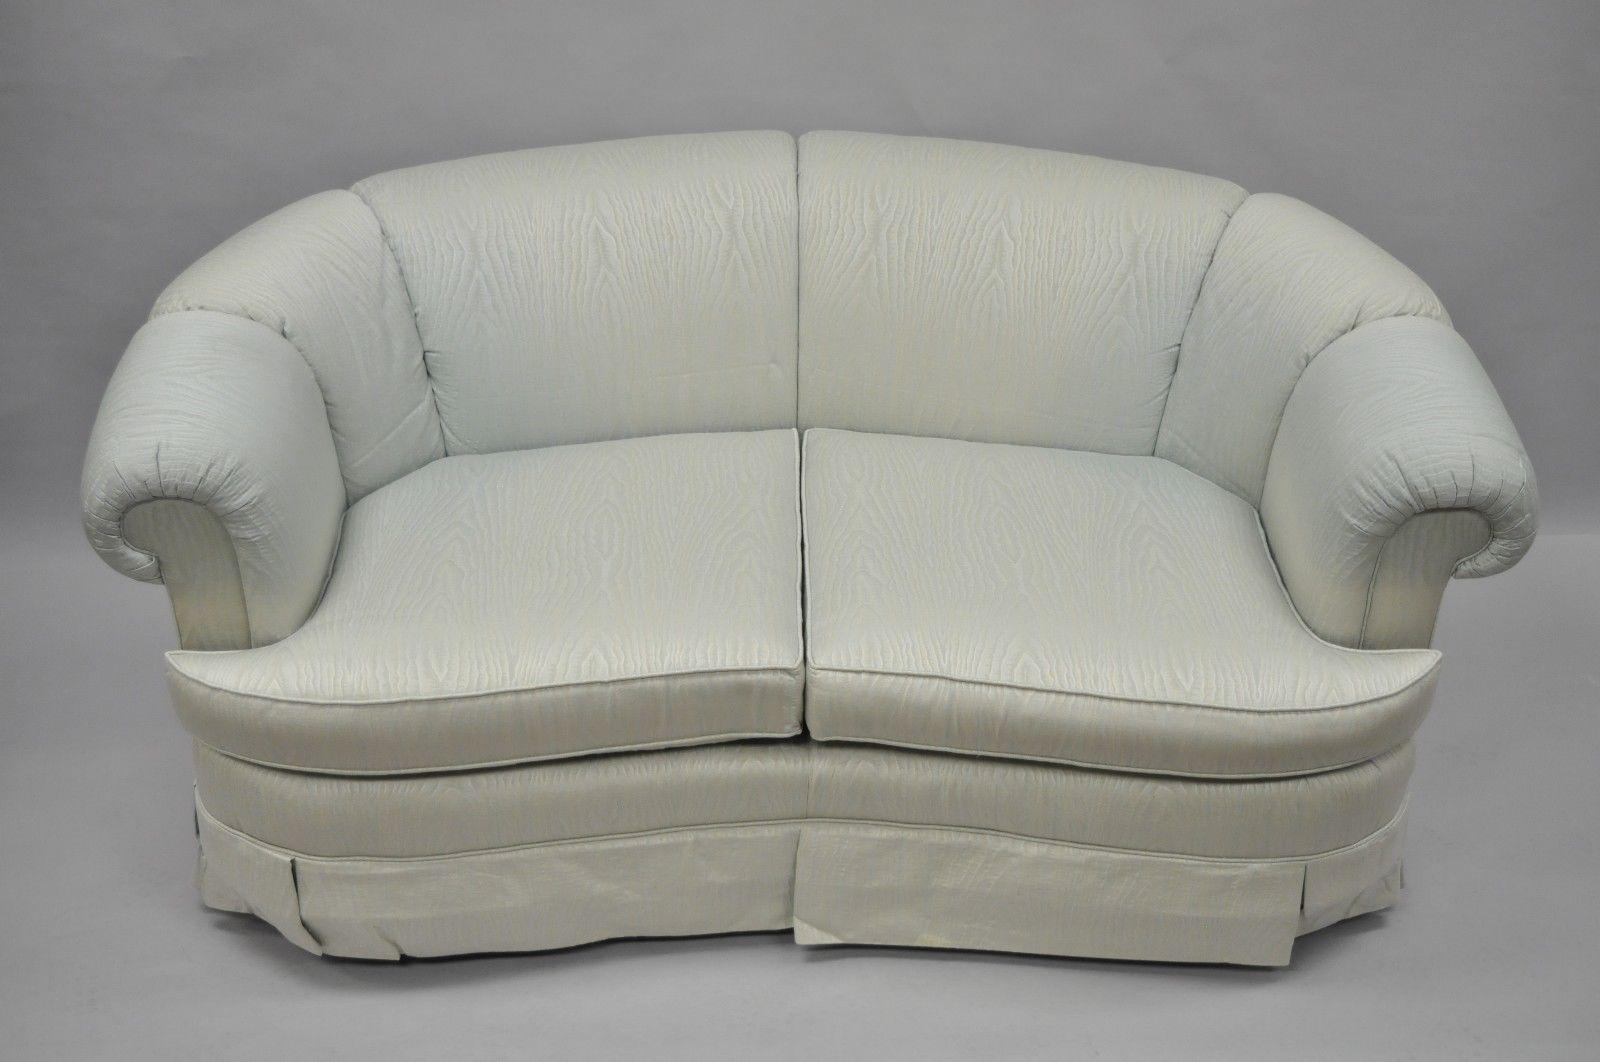 Lovely Henredon Henredon Schoonbeck Upholstered Curved Loveseat Short Sofa 66  Rolled Arms A For Sale   Image